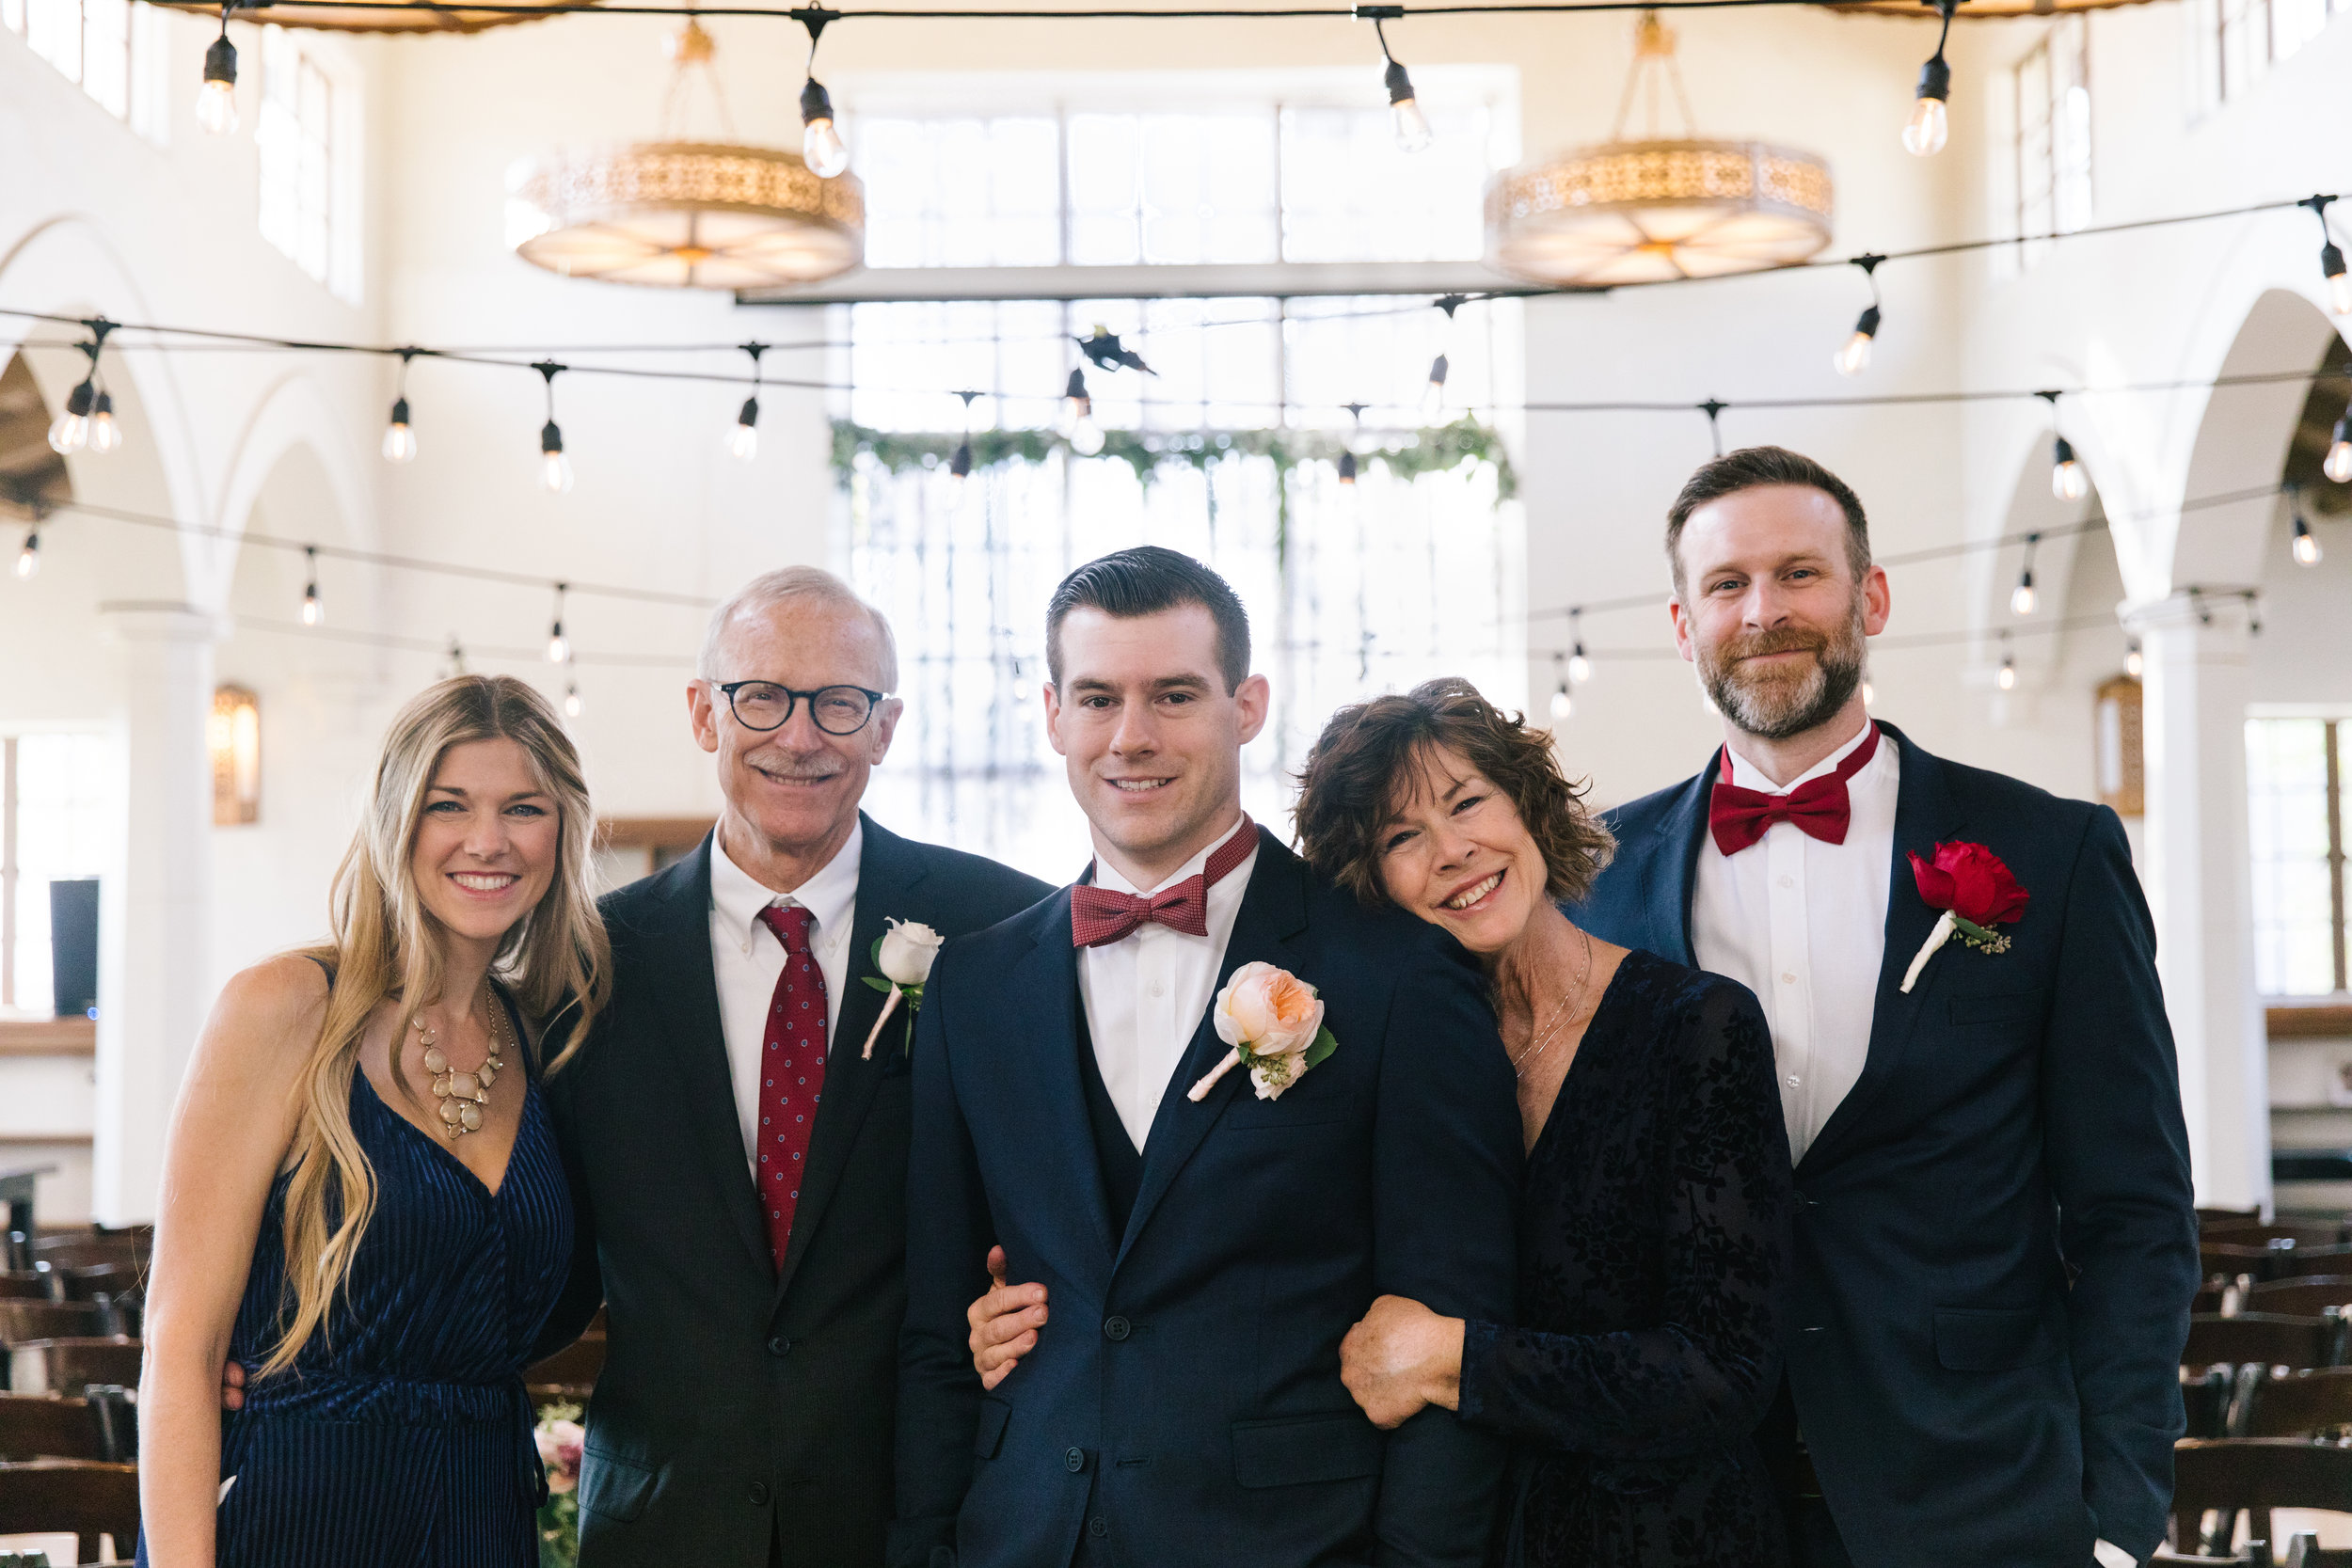 Wedding_GregDamarie_2018_1.jpg